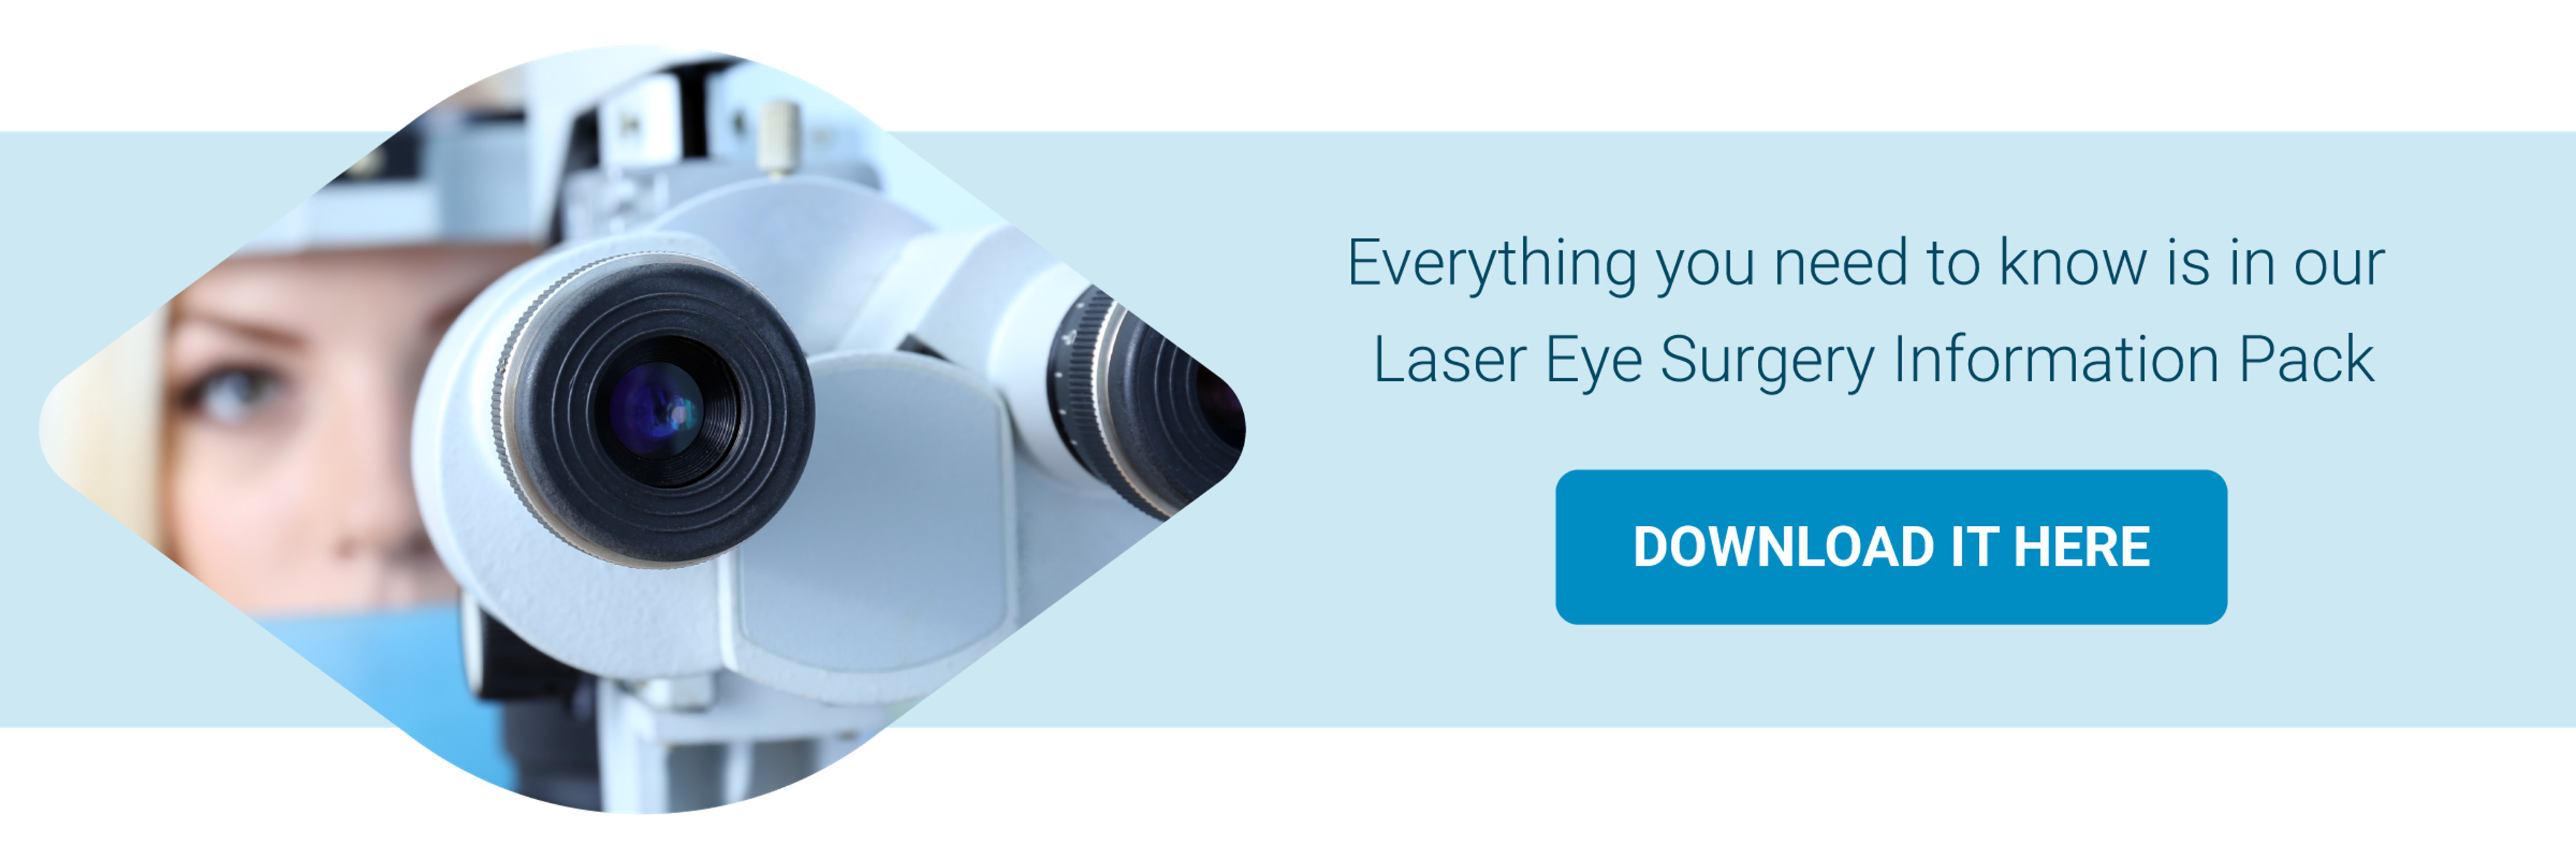 Focus Clinic Laser Eye Surgery Information Pack